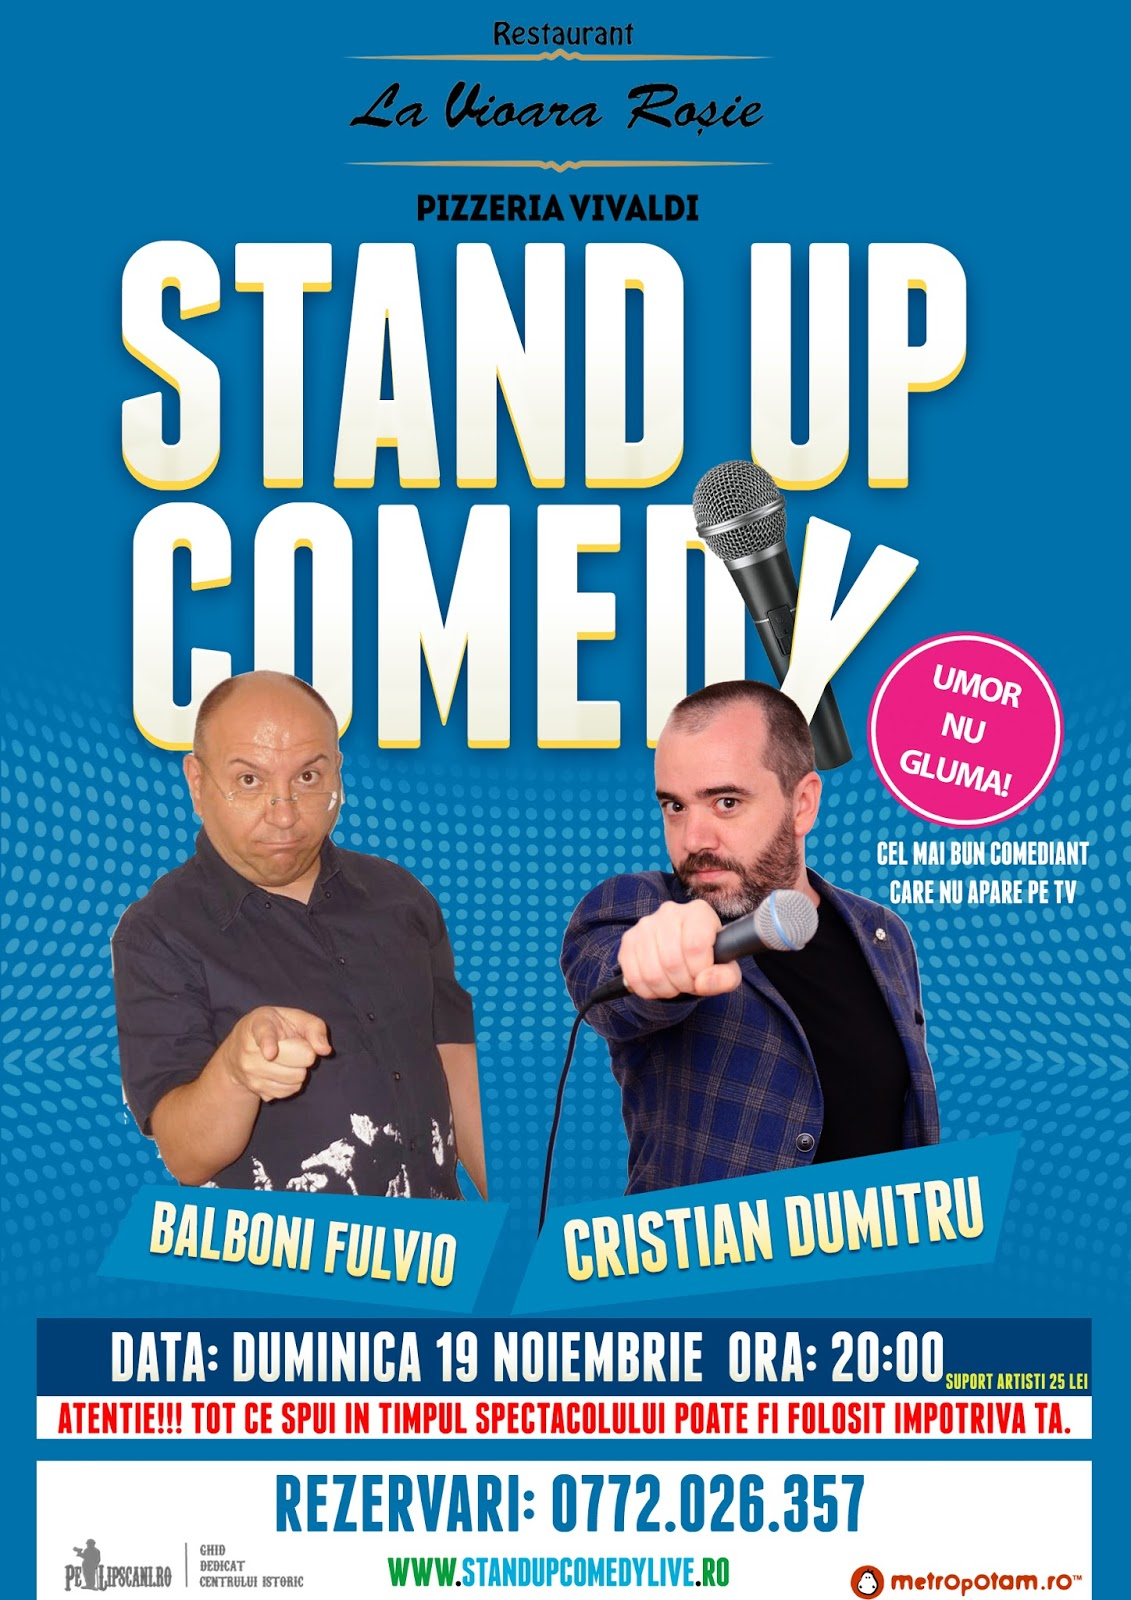 Stand-up Comedy Duminica 19 nov. ora 20 | Pizzeria Vivaldi